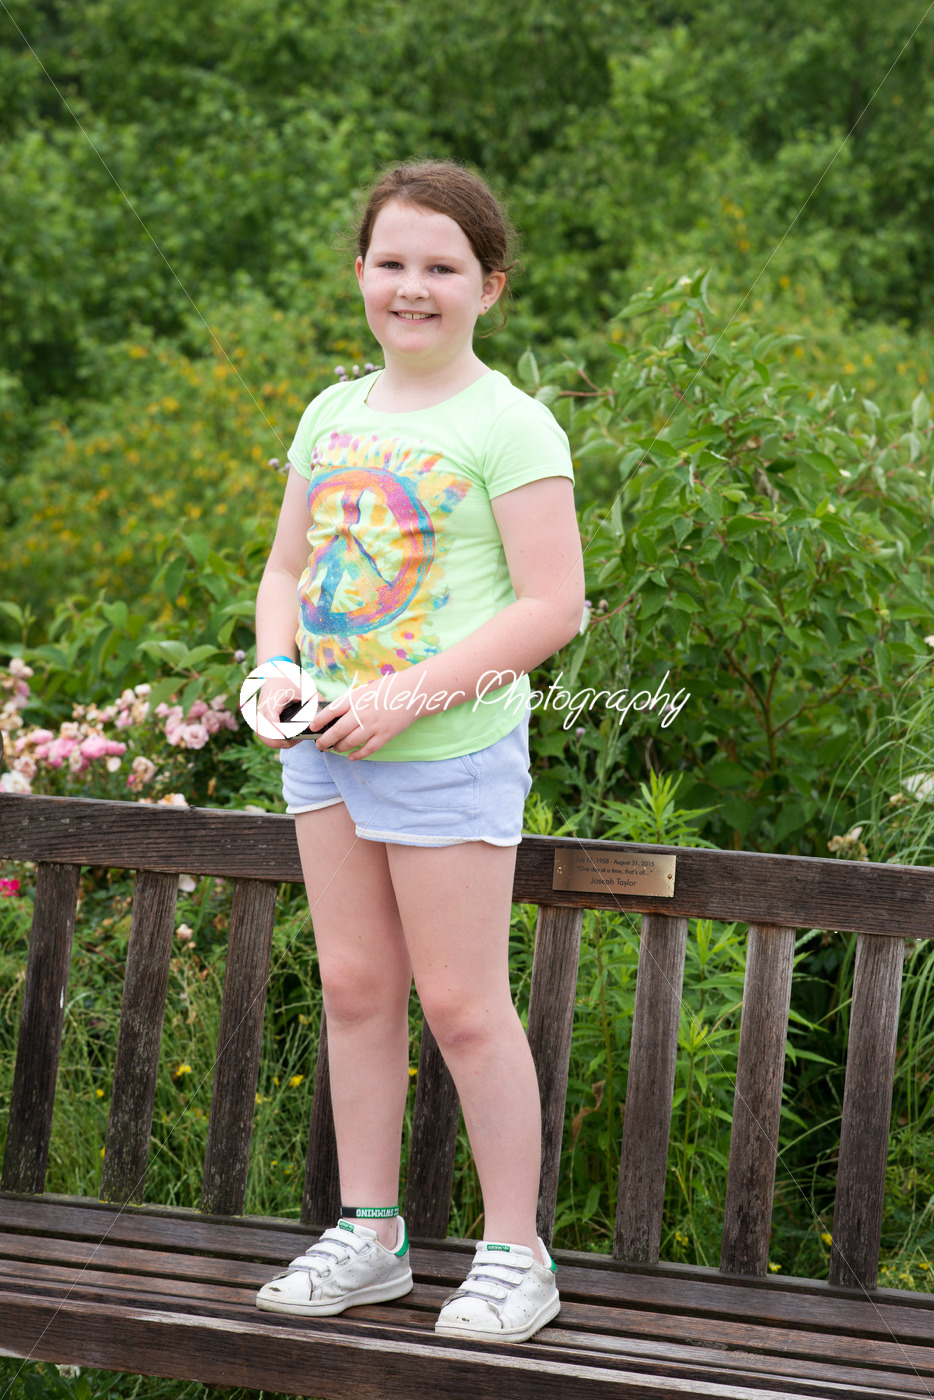 Young Pre Teen Girl Female Woman Torso Vertical Format: Preteen Smiling Girl Standing On Wooden Bench